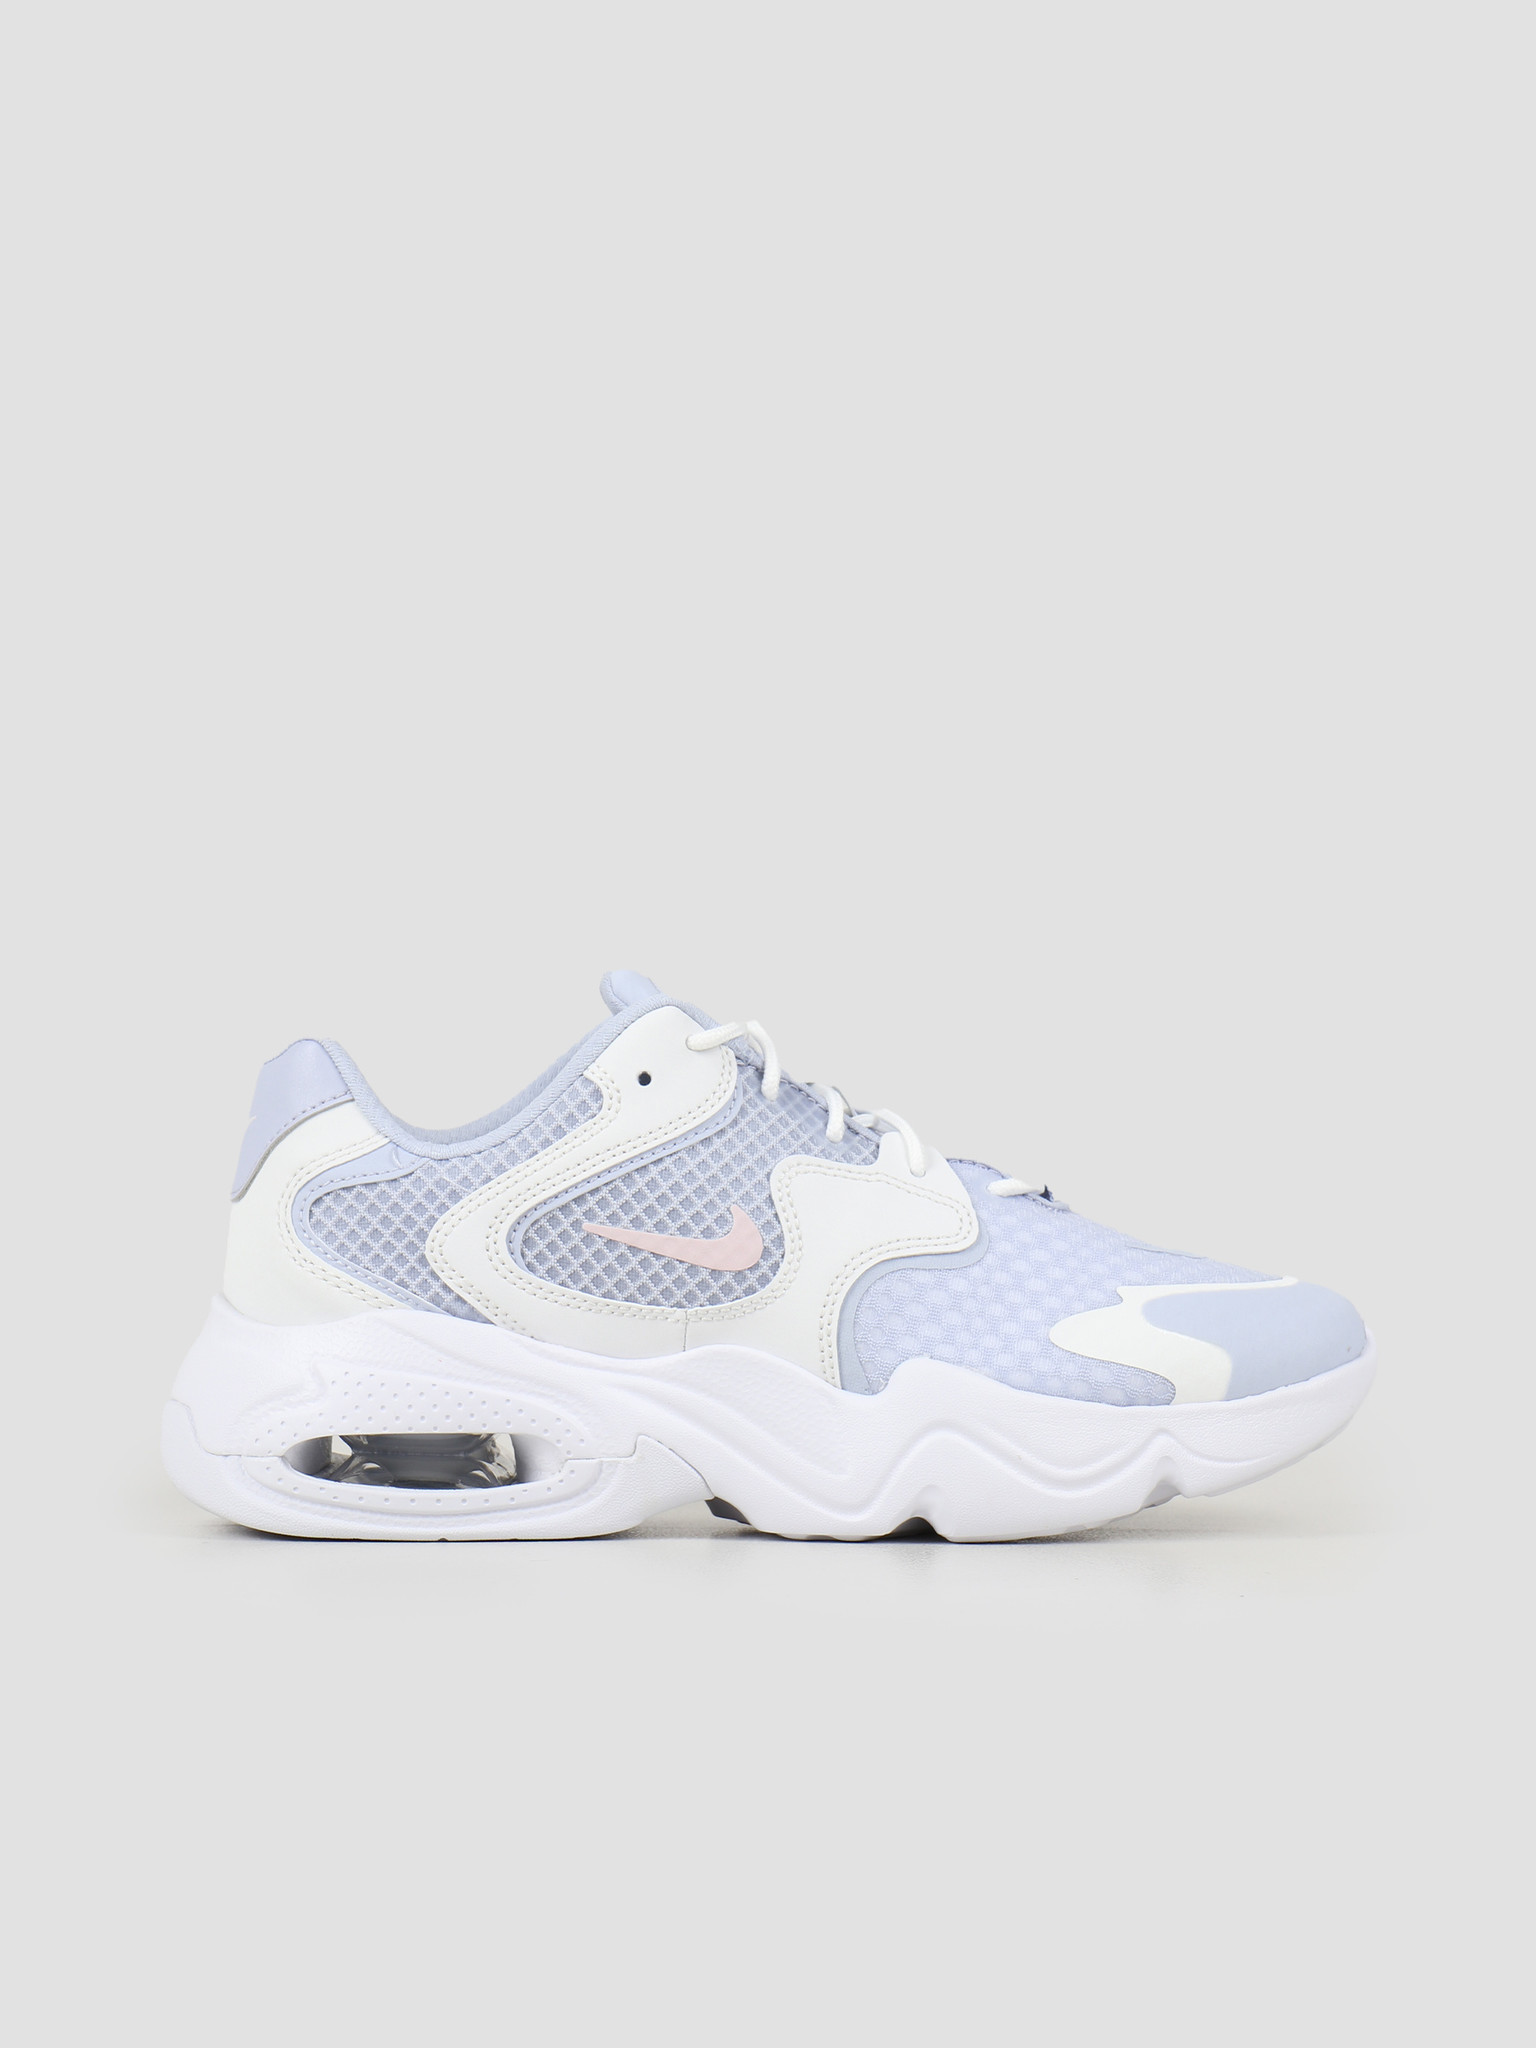 Nike Nike W Air Max 2X Ghost Barely Rose-Summit White-White CK2947-002